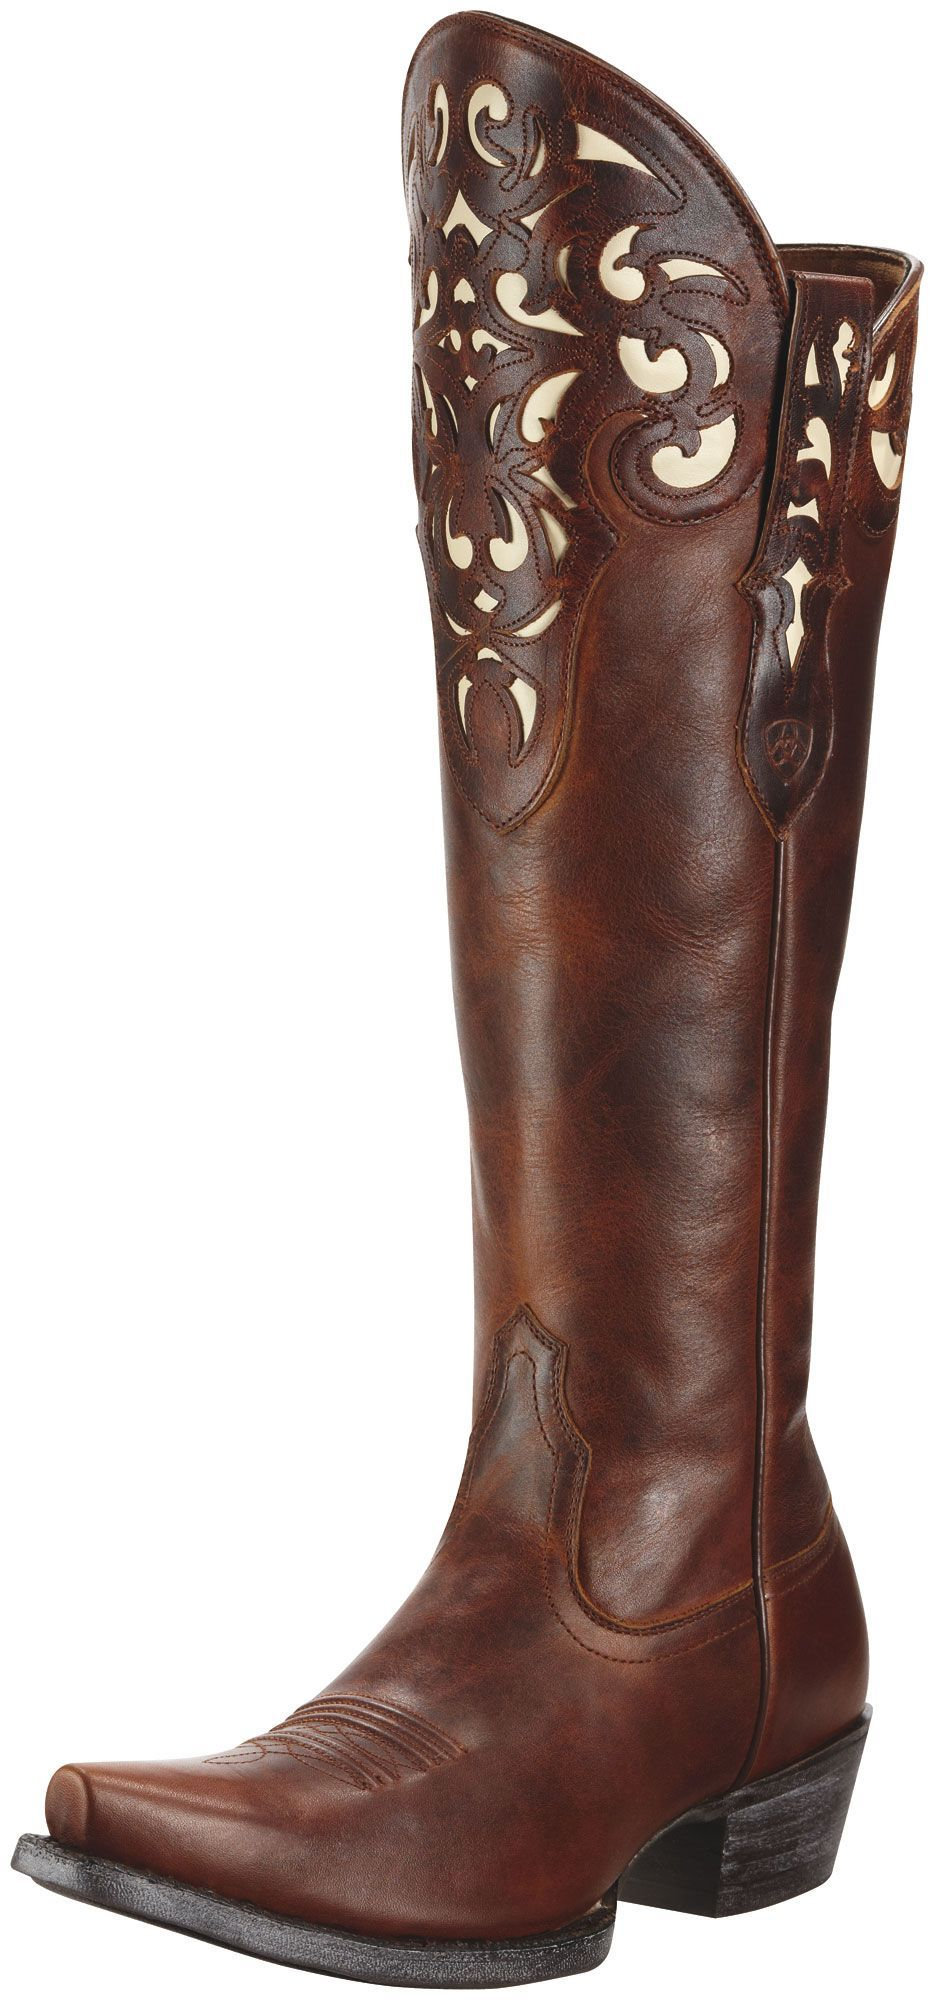 NEW! Womens Ariat Hacienda Boots Vintage Caramel #10010252 ...